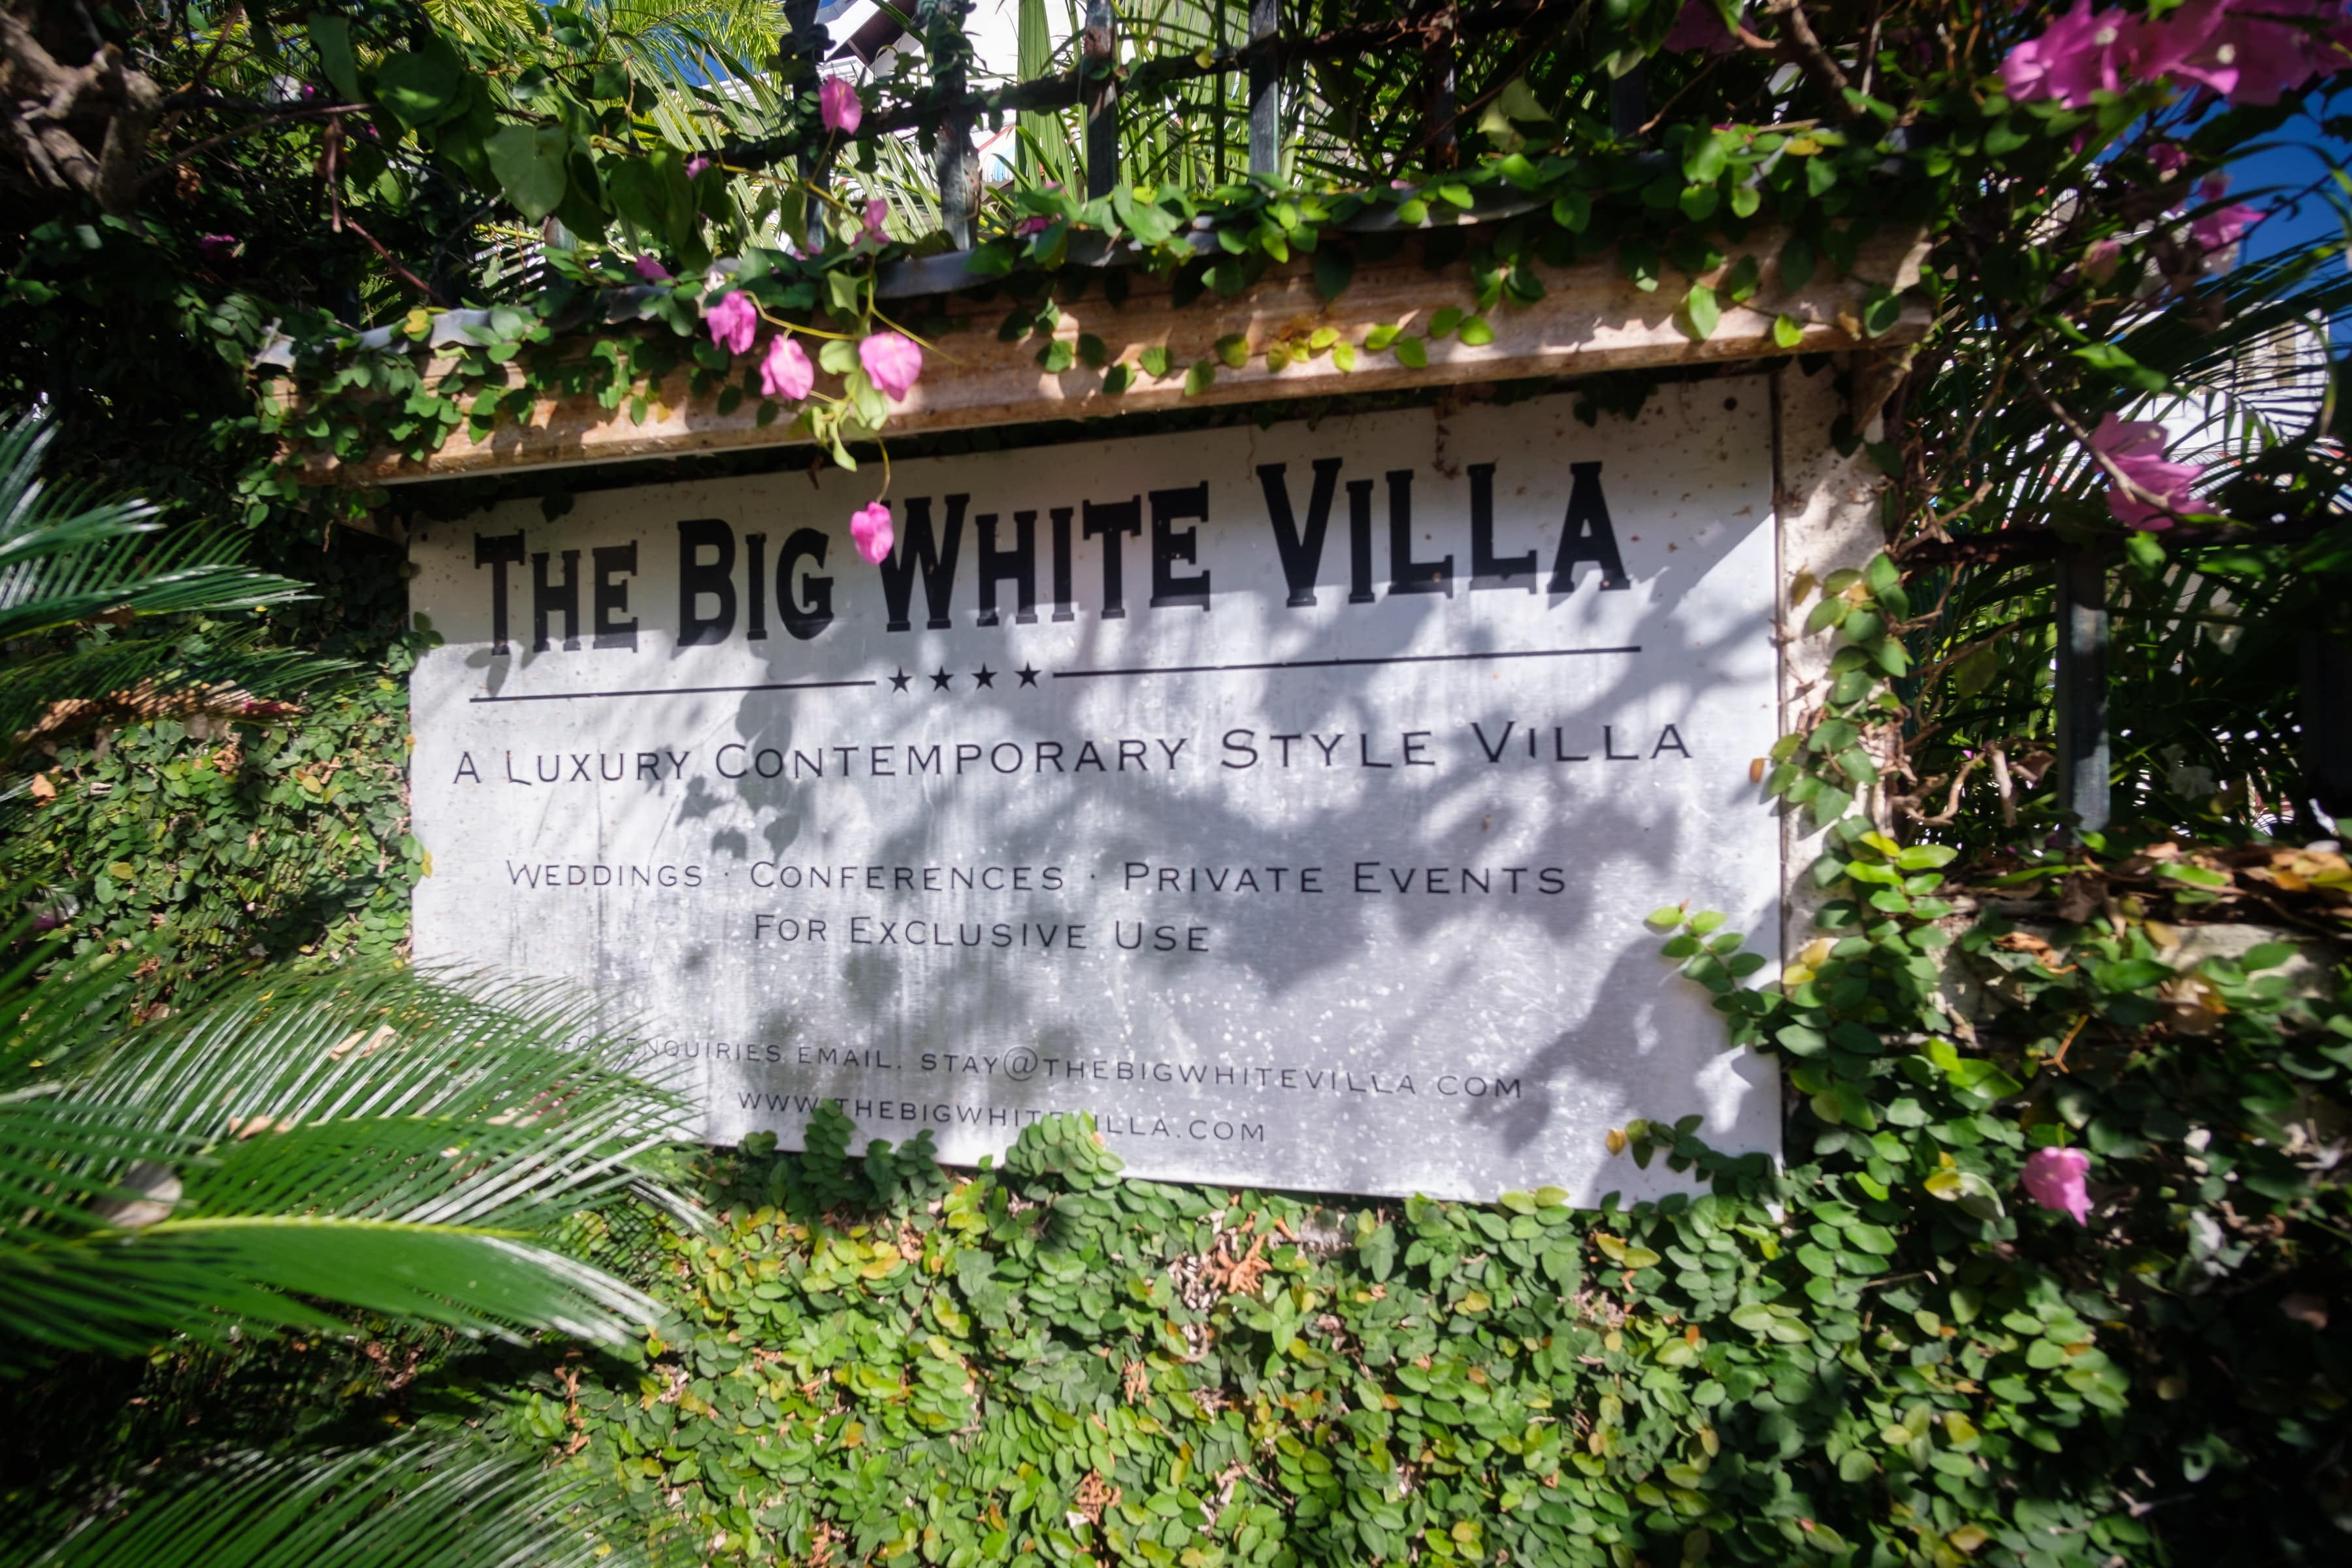 The Big White Villa